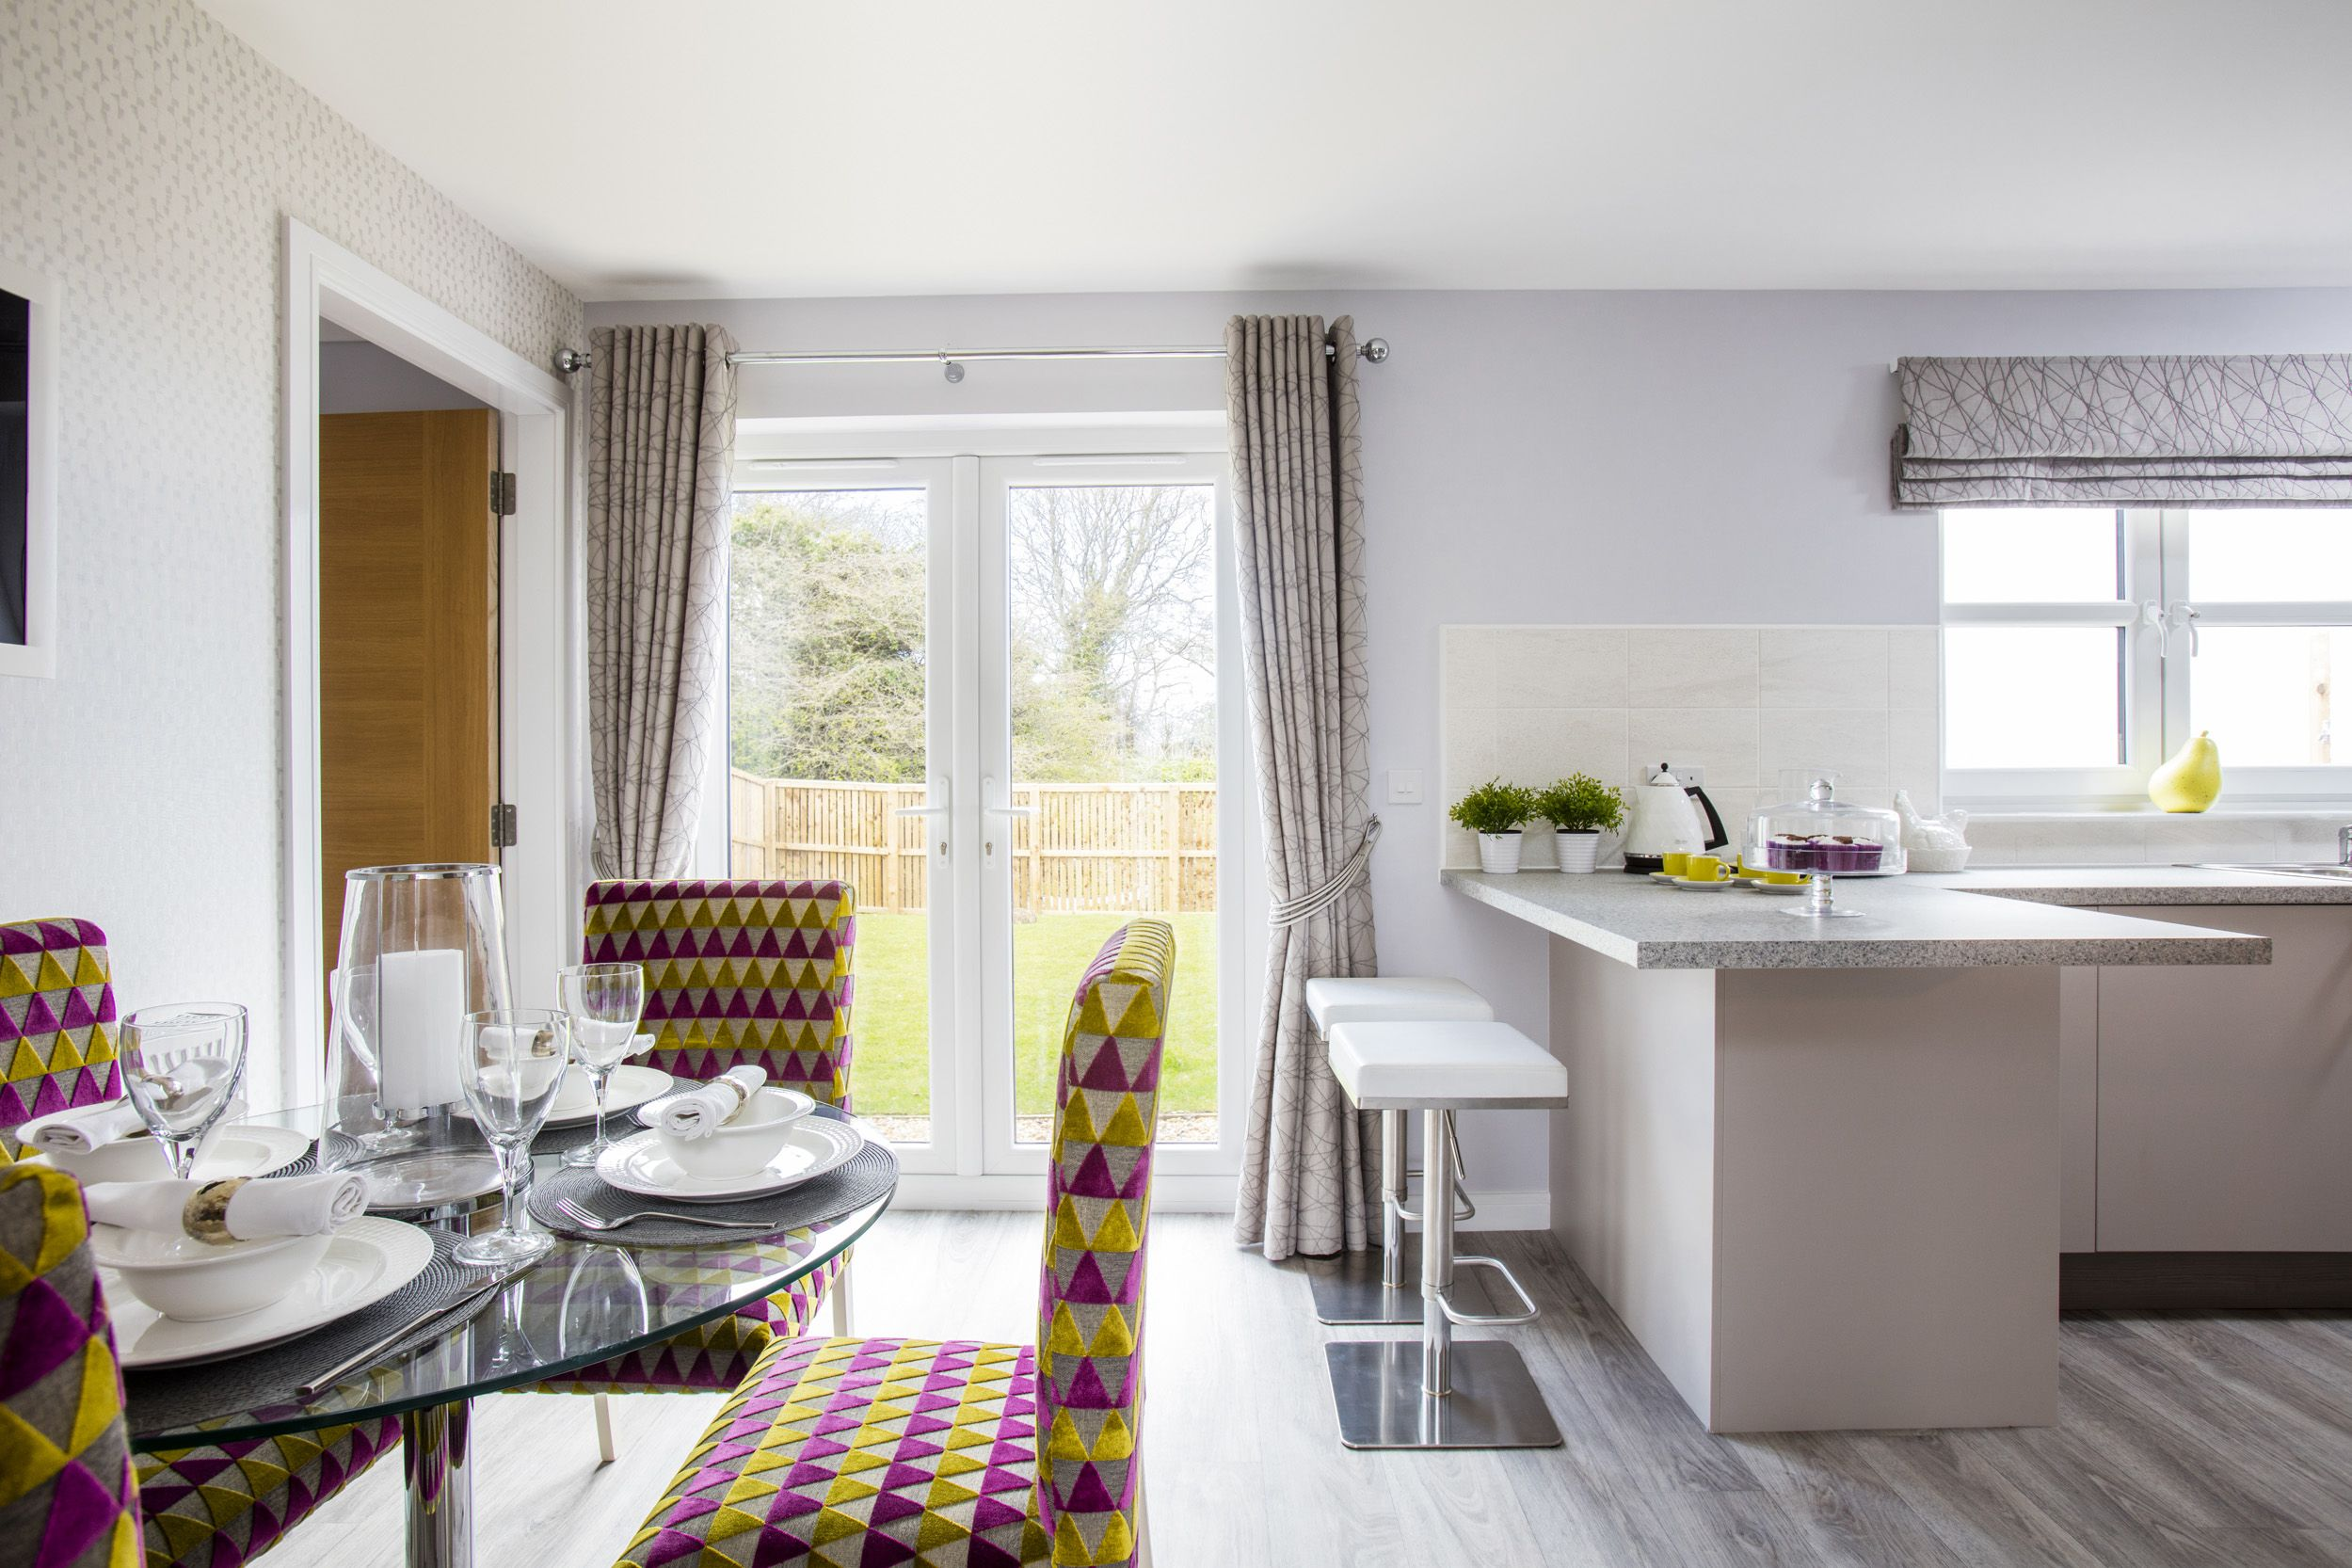 French doors allow plenty of light into this open plan kitchen ...